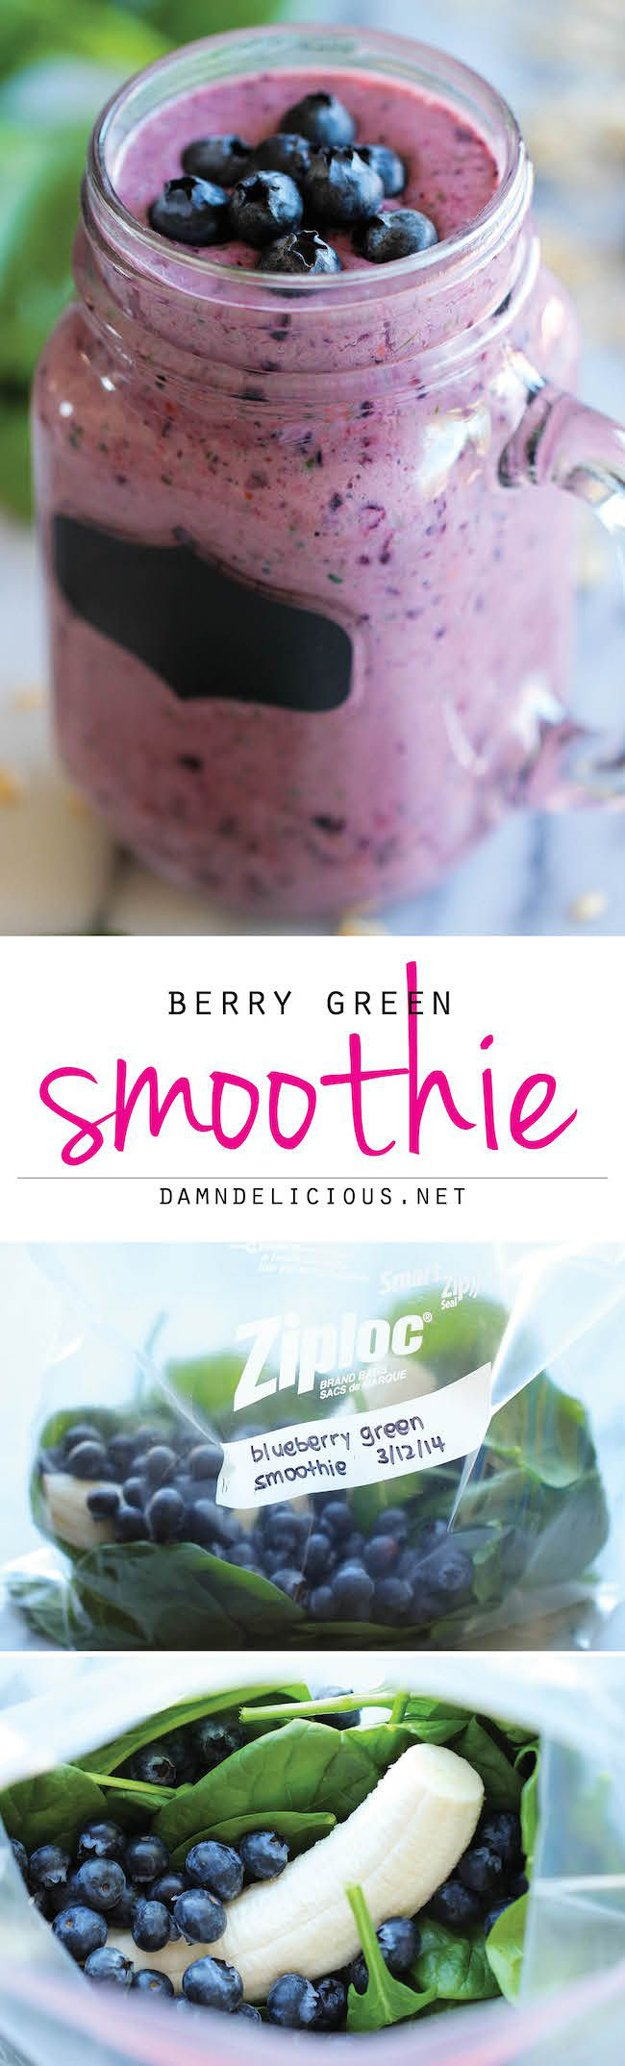 Healthy-Smoothies-Green-Berry-smoothie